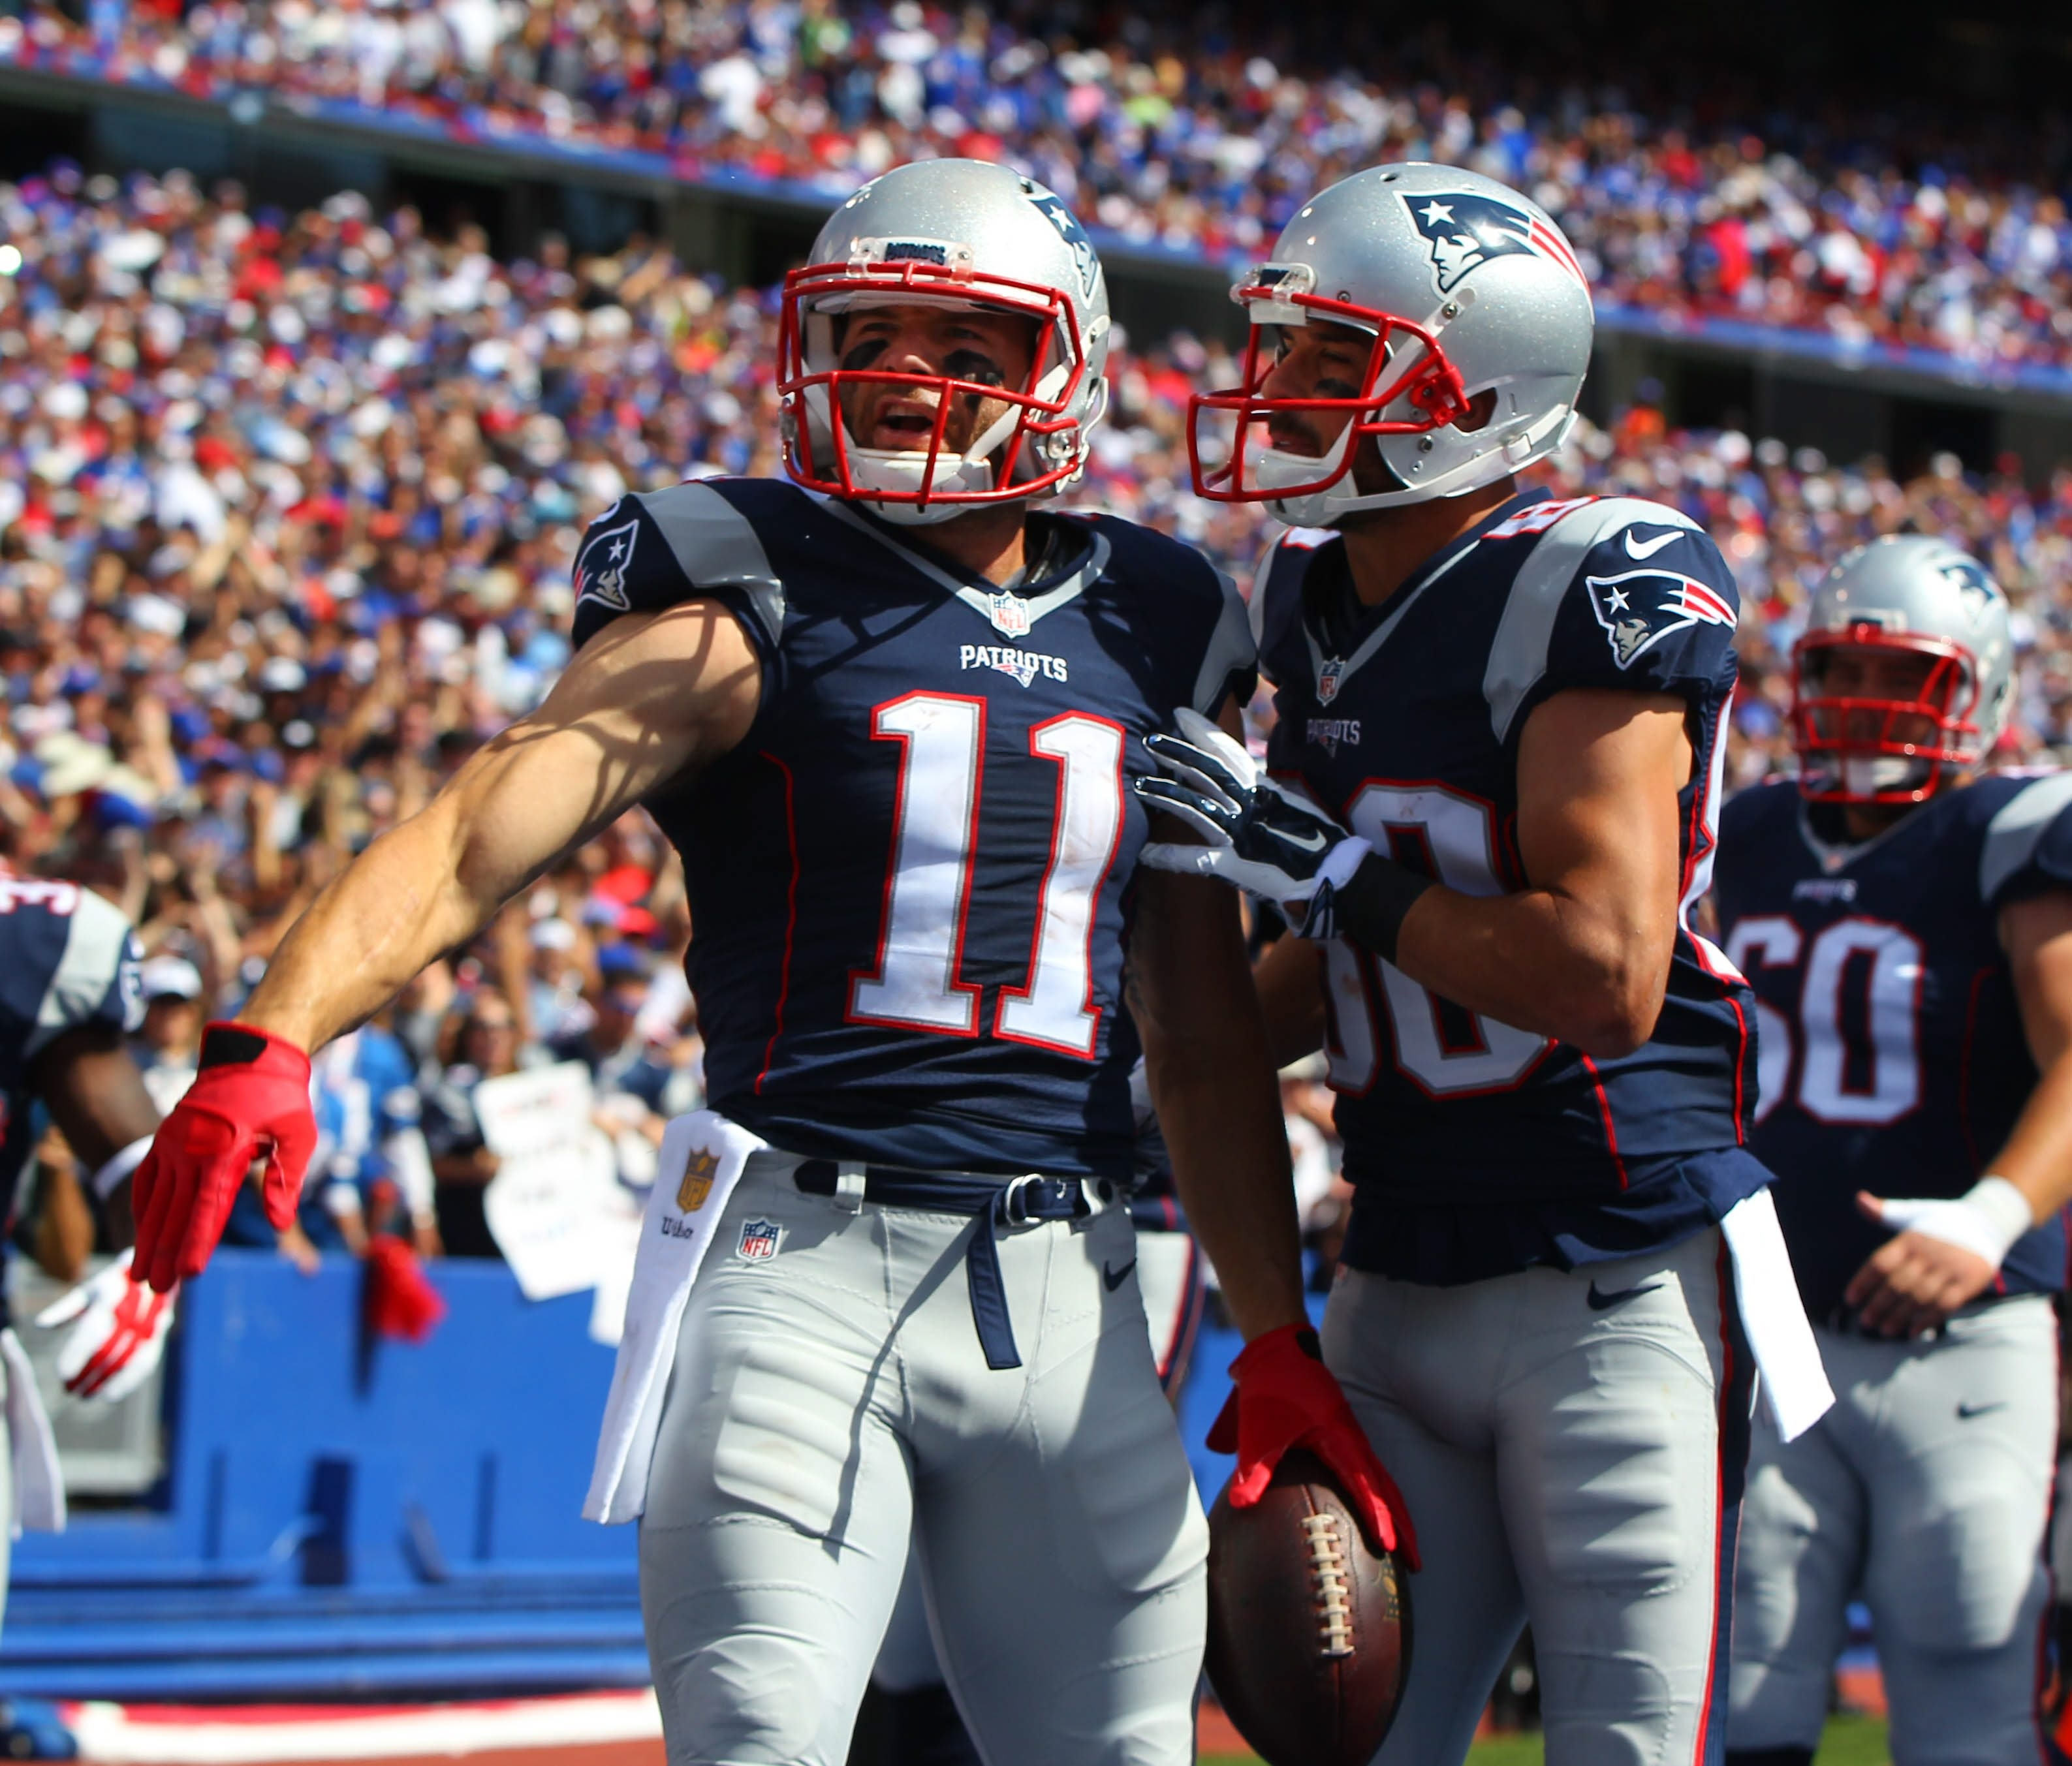 Julian Edelman is expected back in the lineup Saturday when the Patriots meet the Chiefs. (Mark Mulville/Buffalo News)